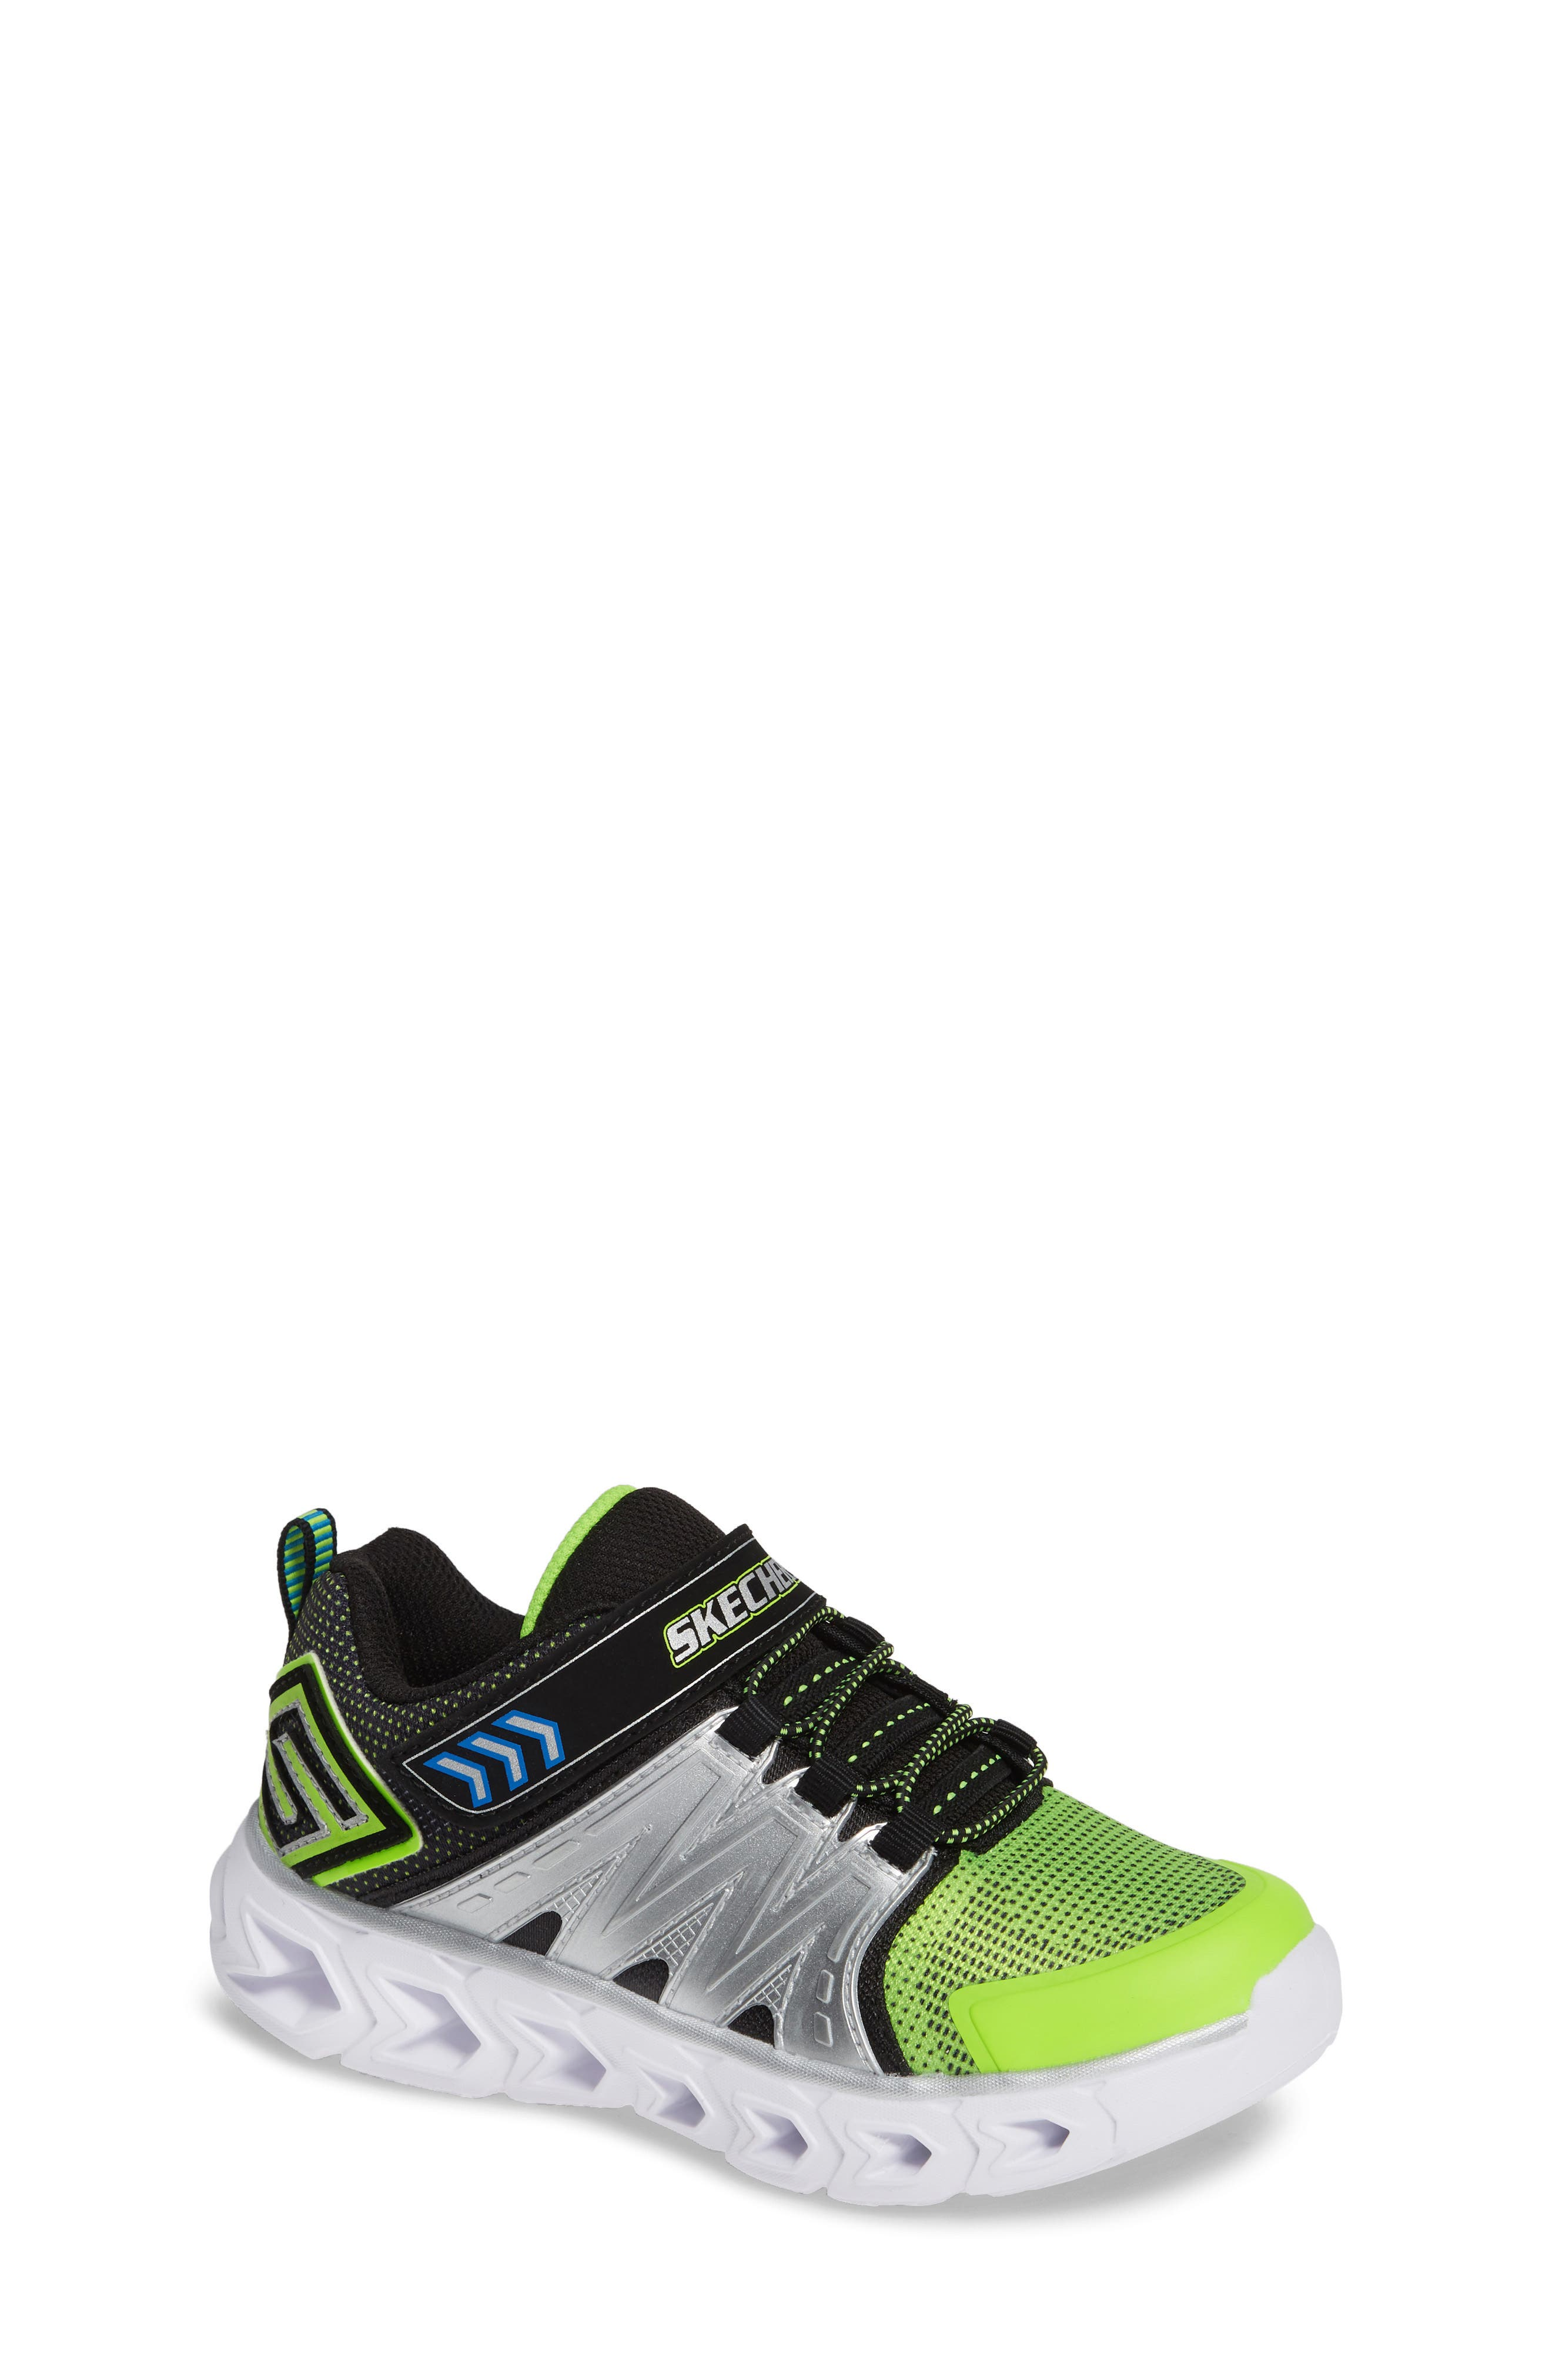 Hypno-Flash 2.0 Sneakers,                         Main,                         color, Lime/ Black